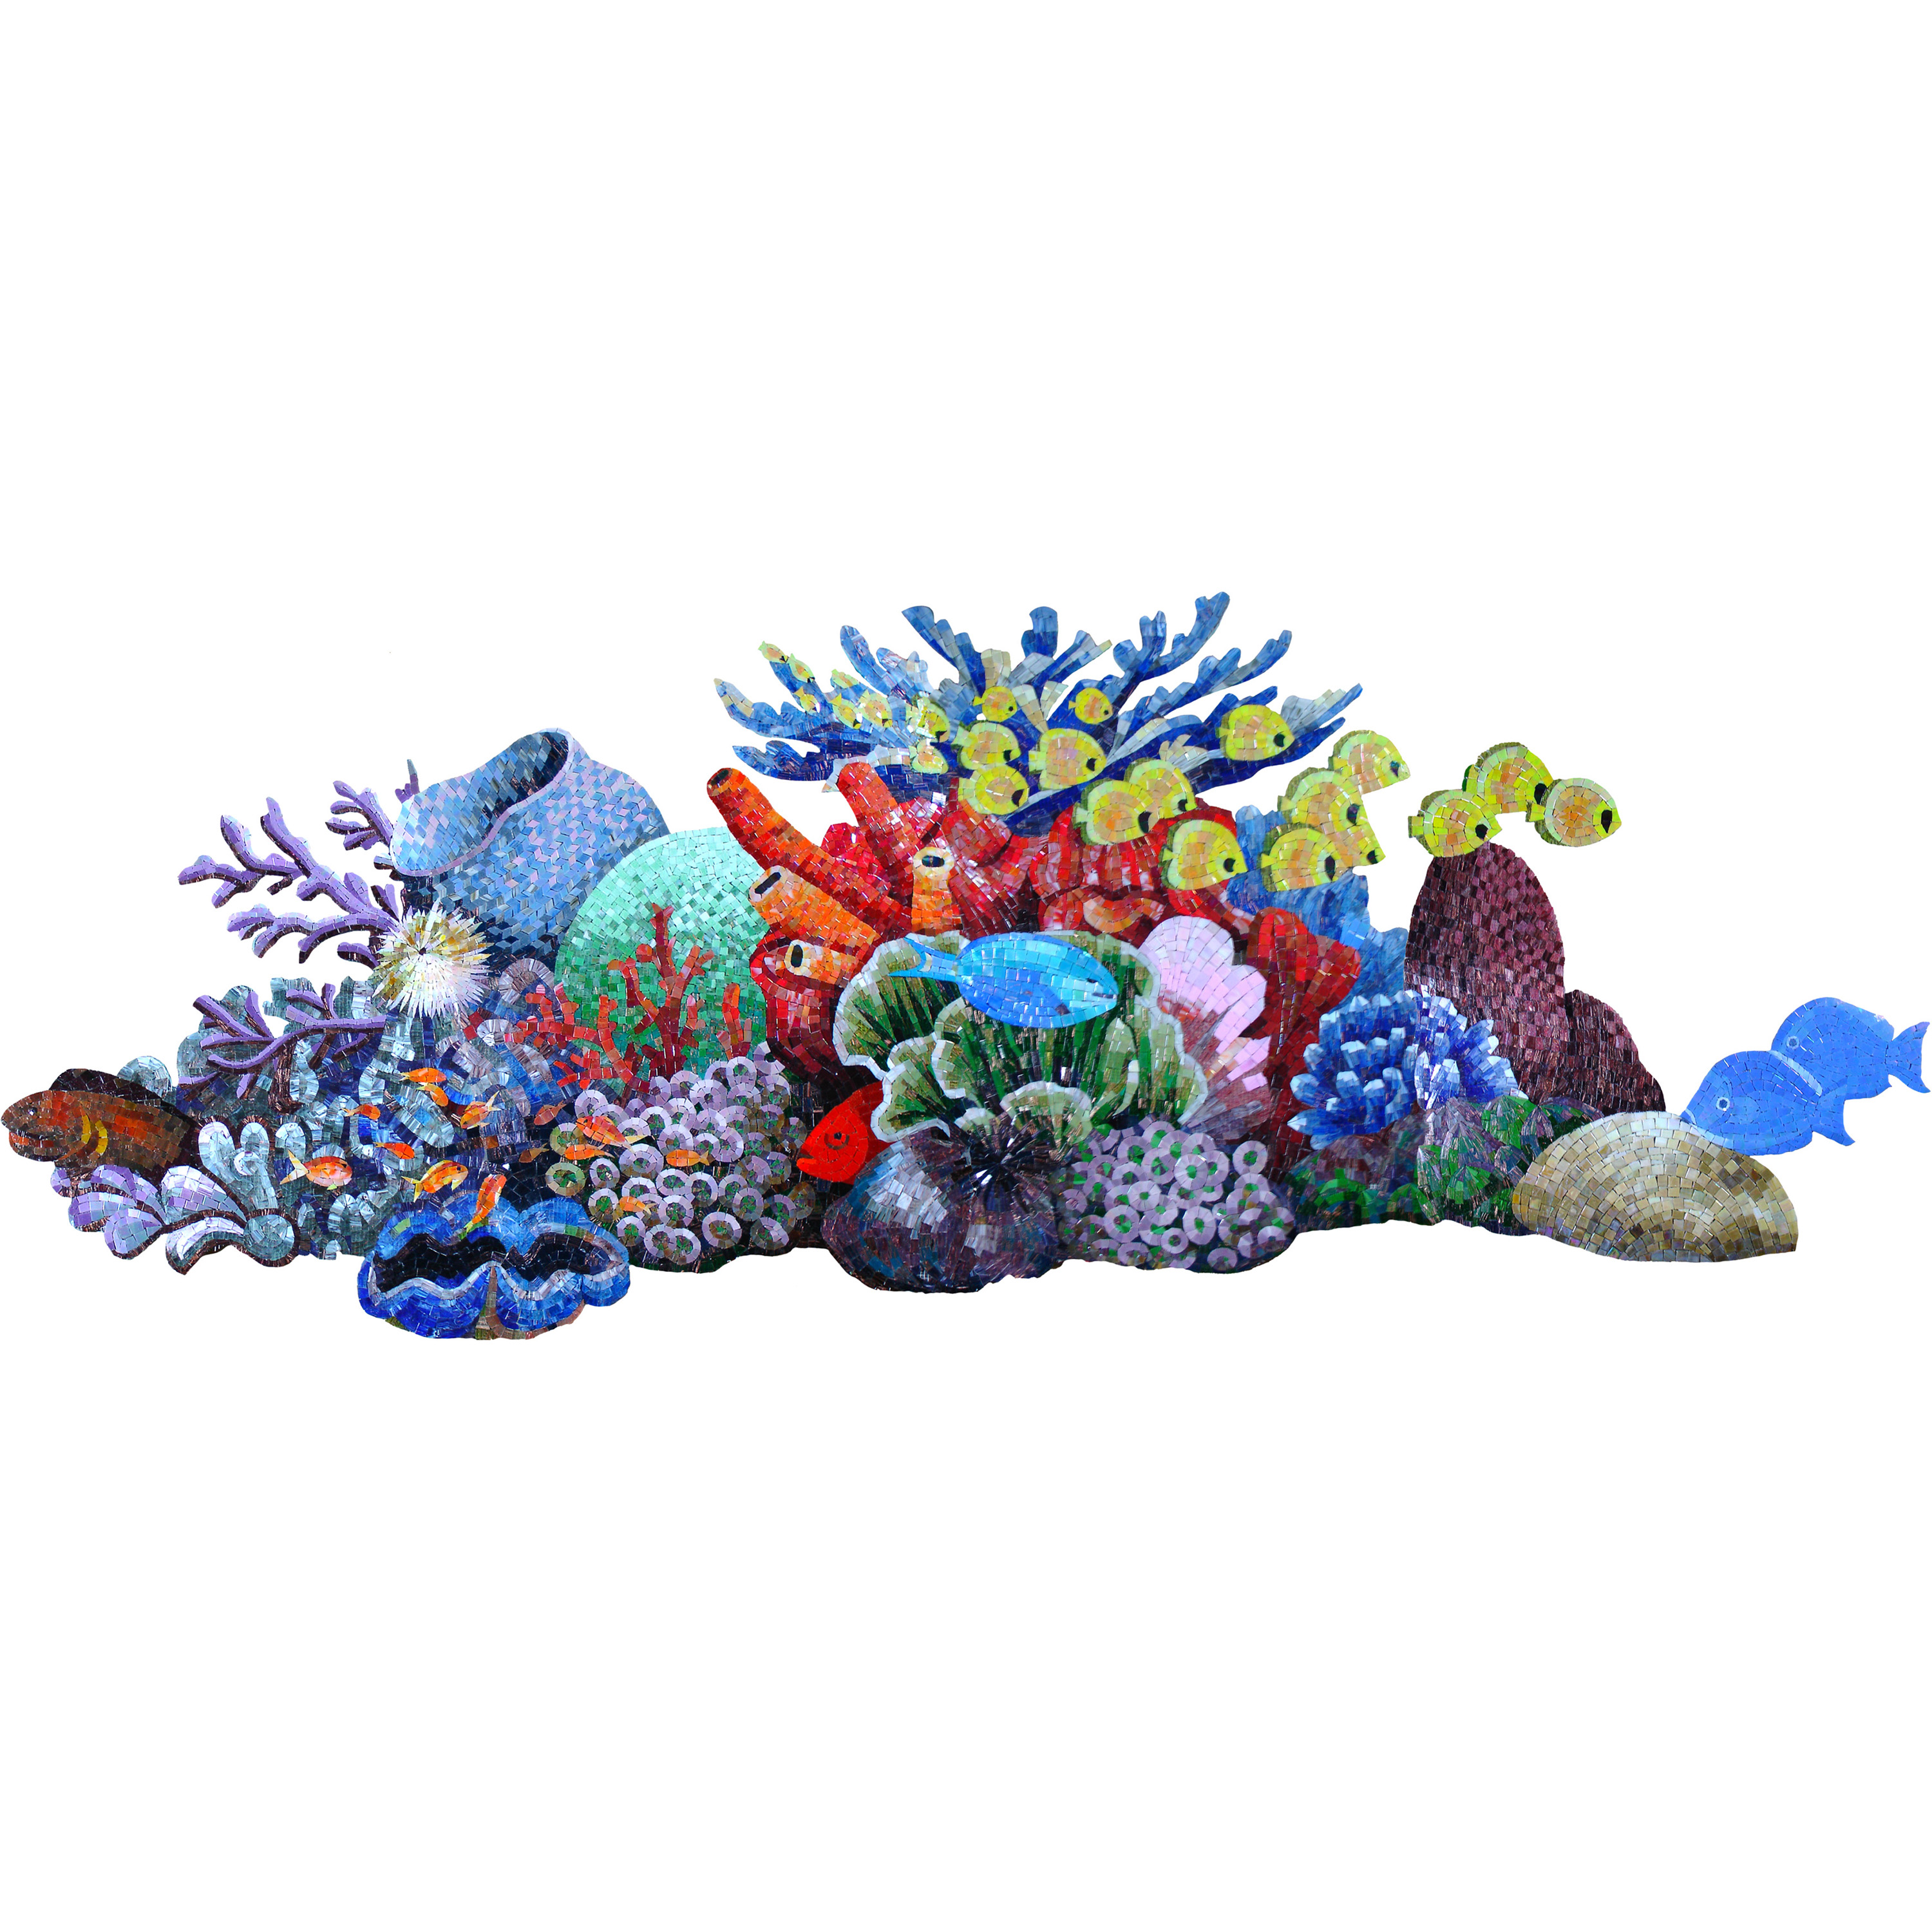 Reef Scene Glass Swimming Pool Mural 37 x 100""